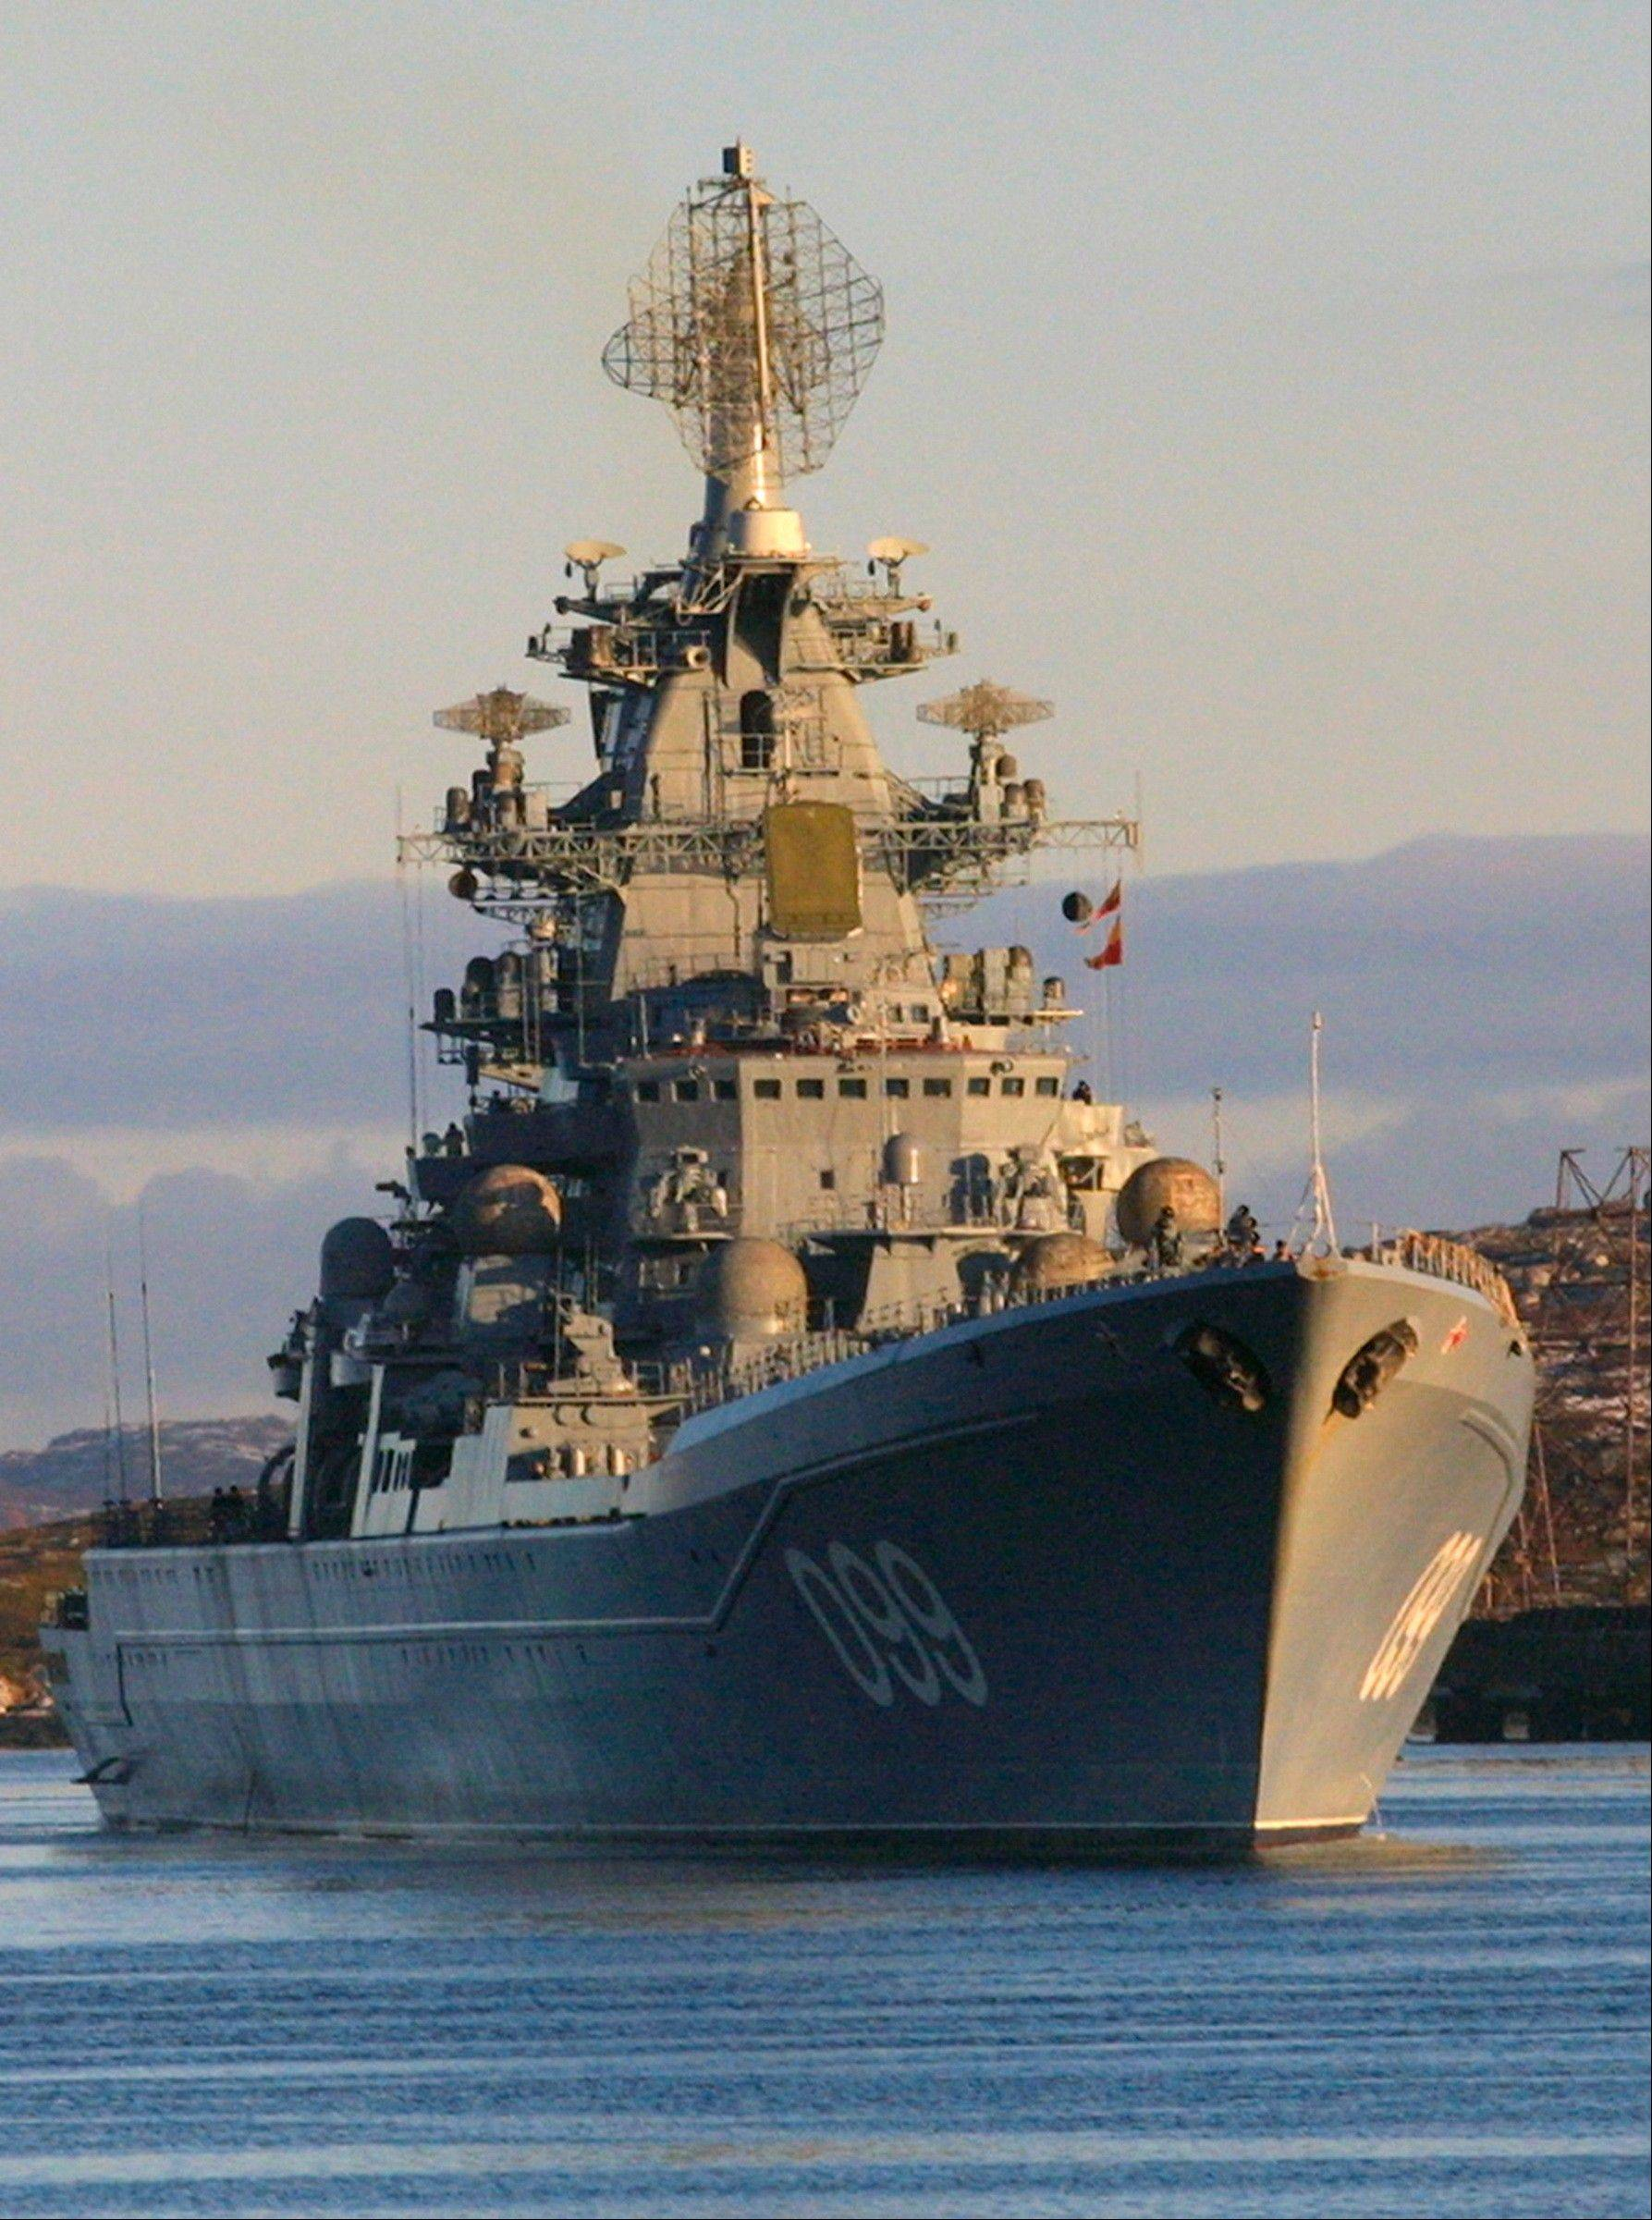 Associated Press/October, 2001The Pyotr Velikiy, Peter the Great, Russian nuclear-powered missile cruiser. Vice Admiral Viktor Chirkov, Russia's navy chief said Friday that Moscow is talking to Cuba, Vietnam and the Seychelles about housing Russian navy ships.